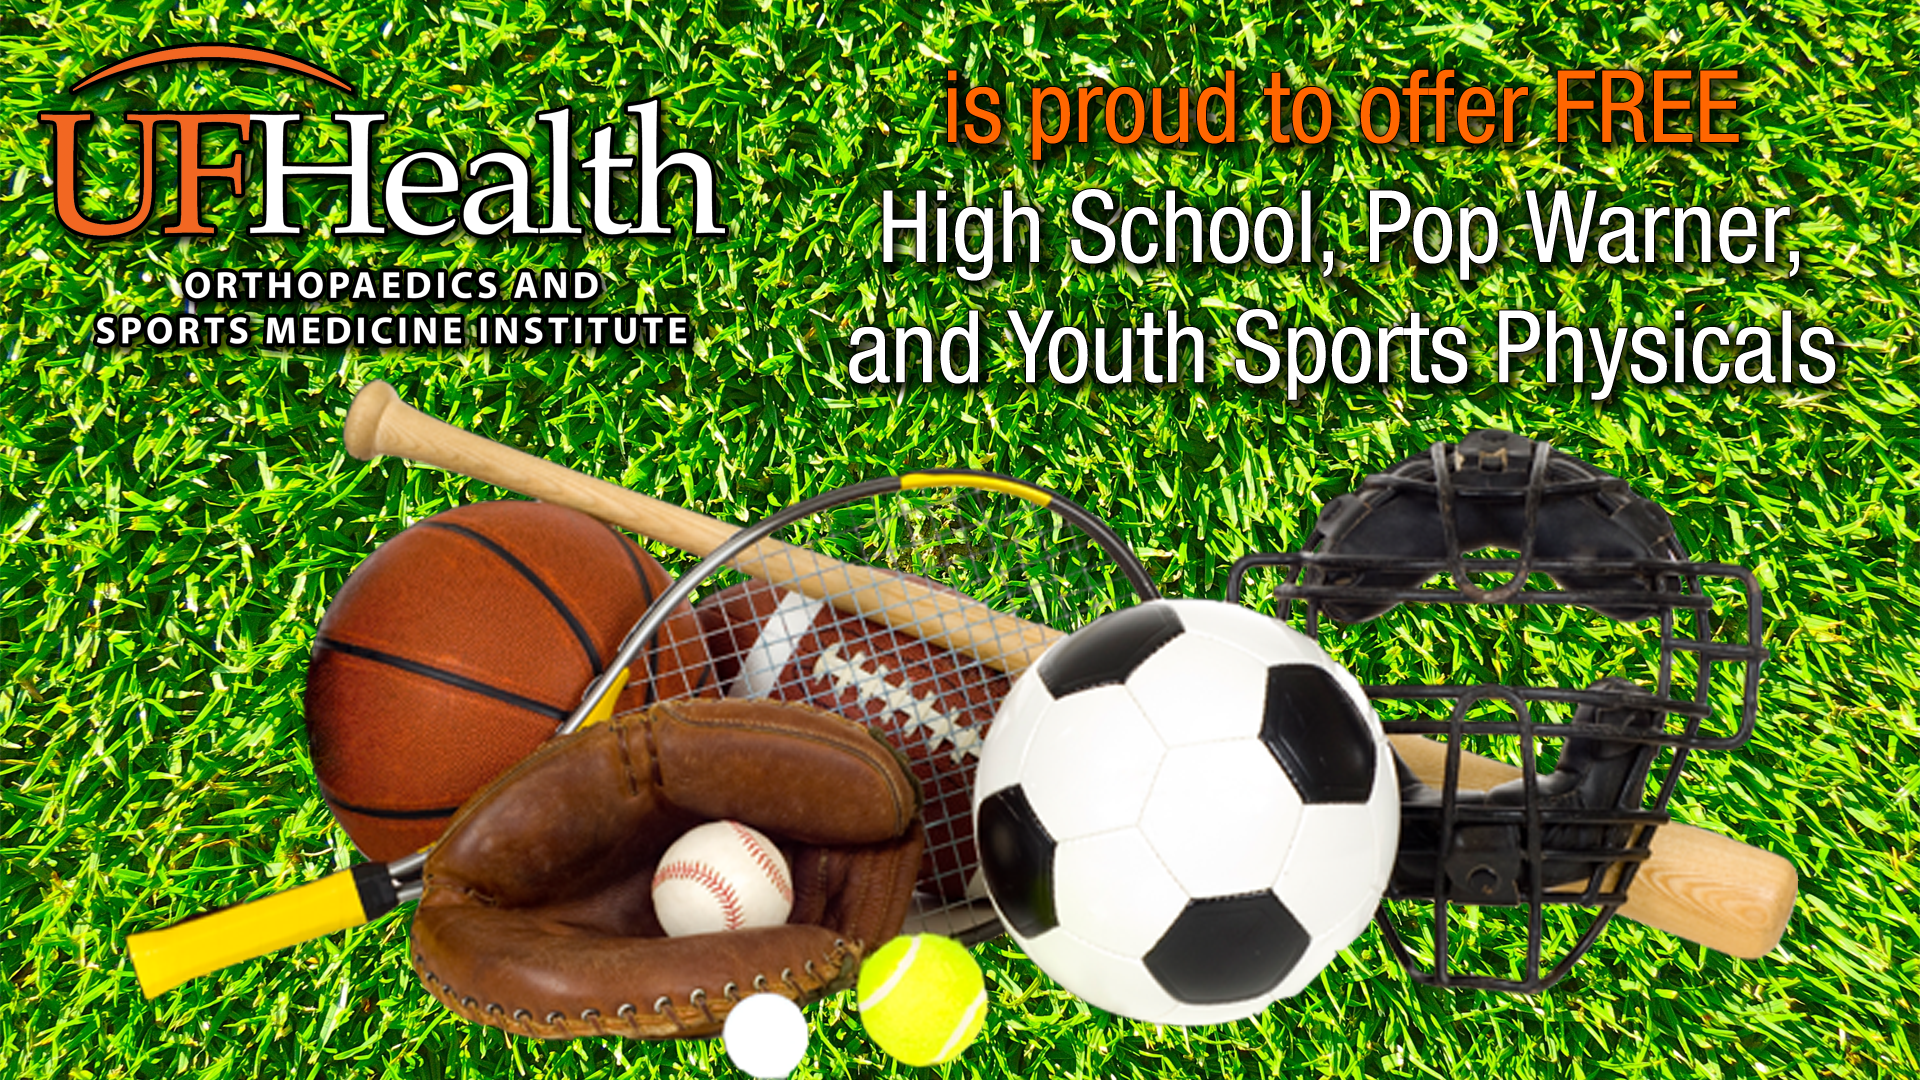 UF Health Orthopaedics to offer Free High School, Pop Warner, and Youth Pre-Participation/Sports Physicals